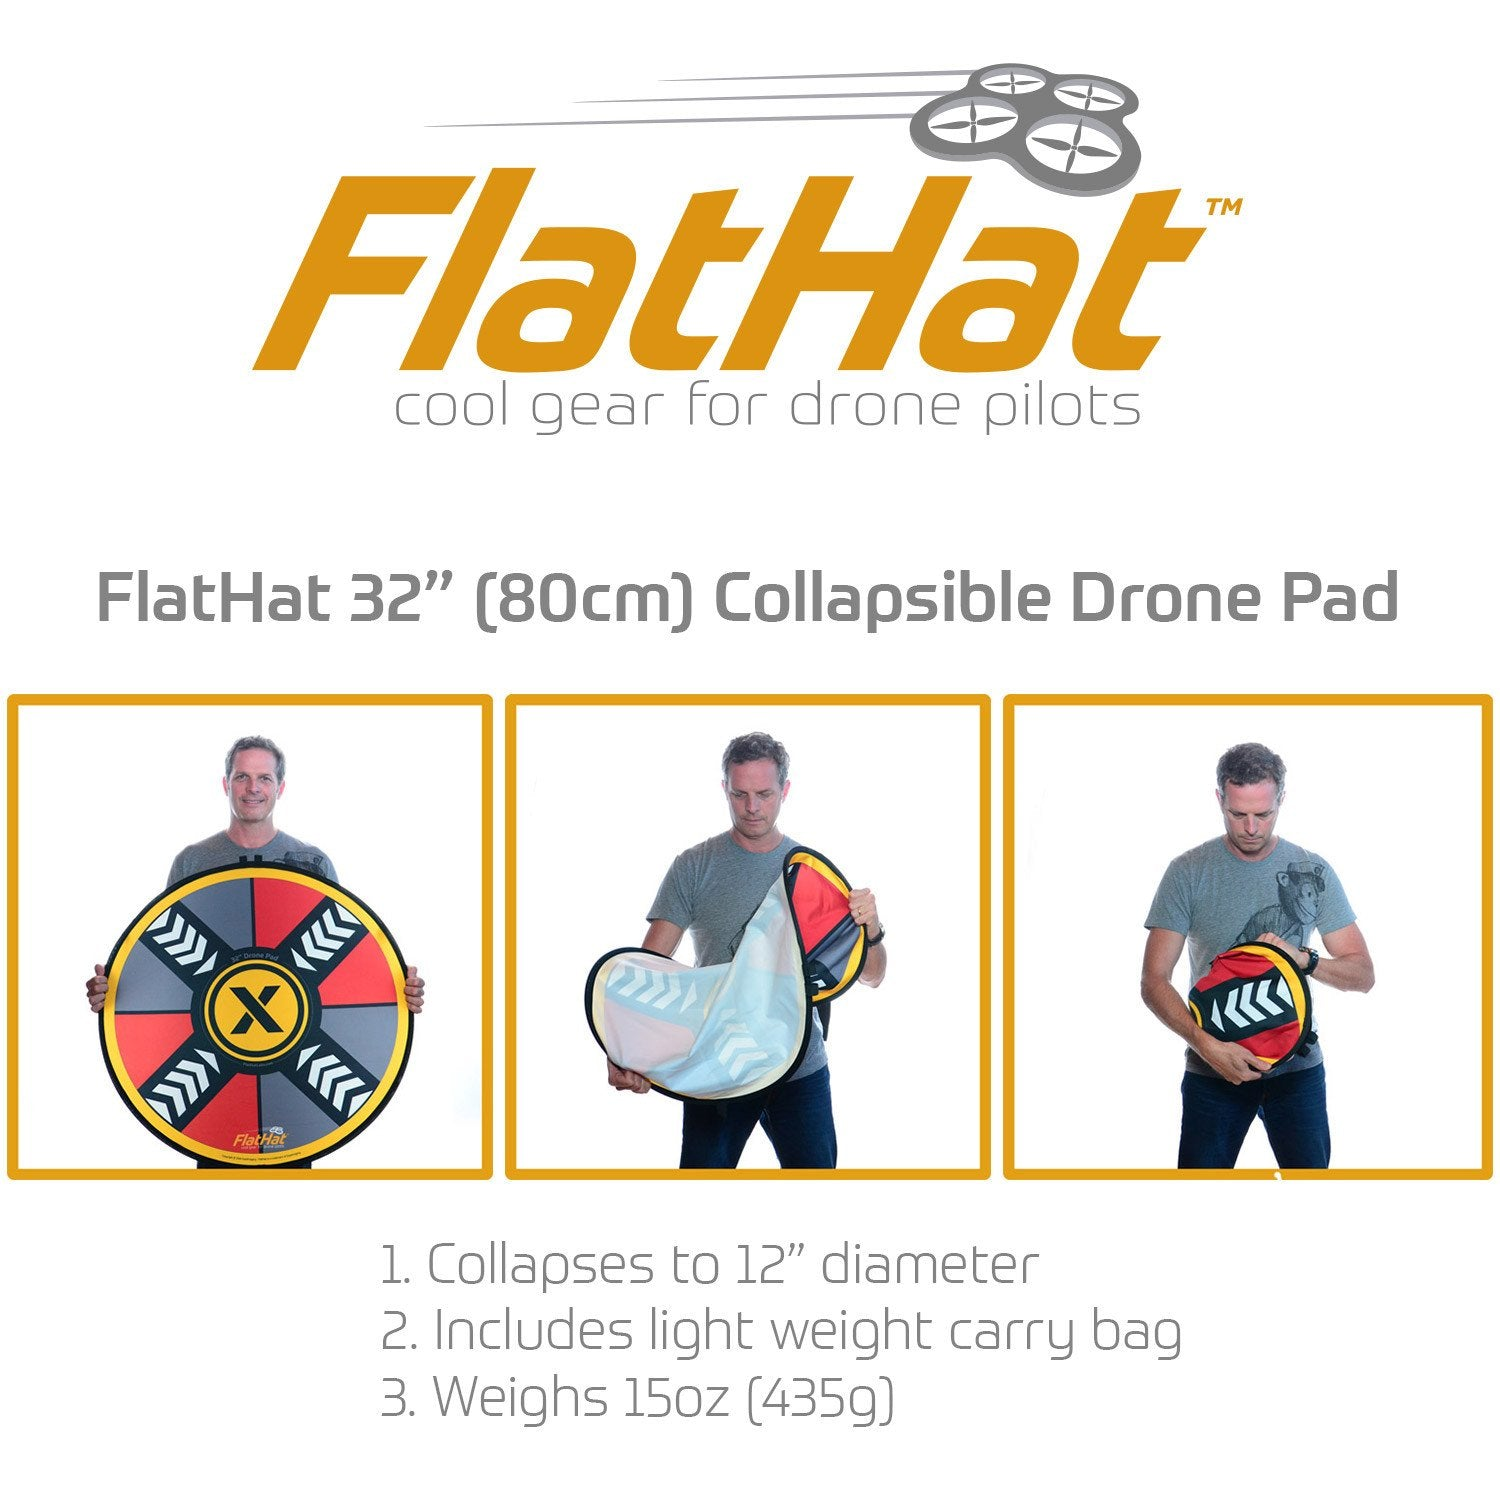 "FlatHat 32"" (80cm) Collapsible Drone Pad - Red Gold"